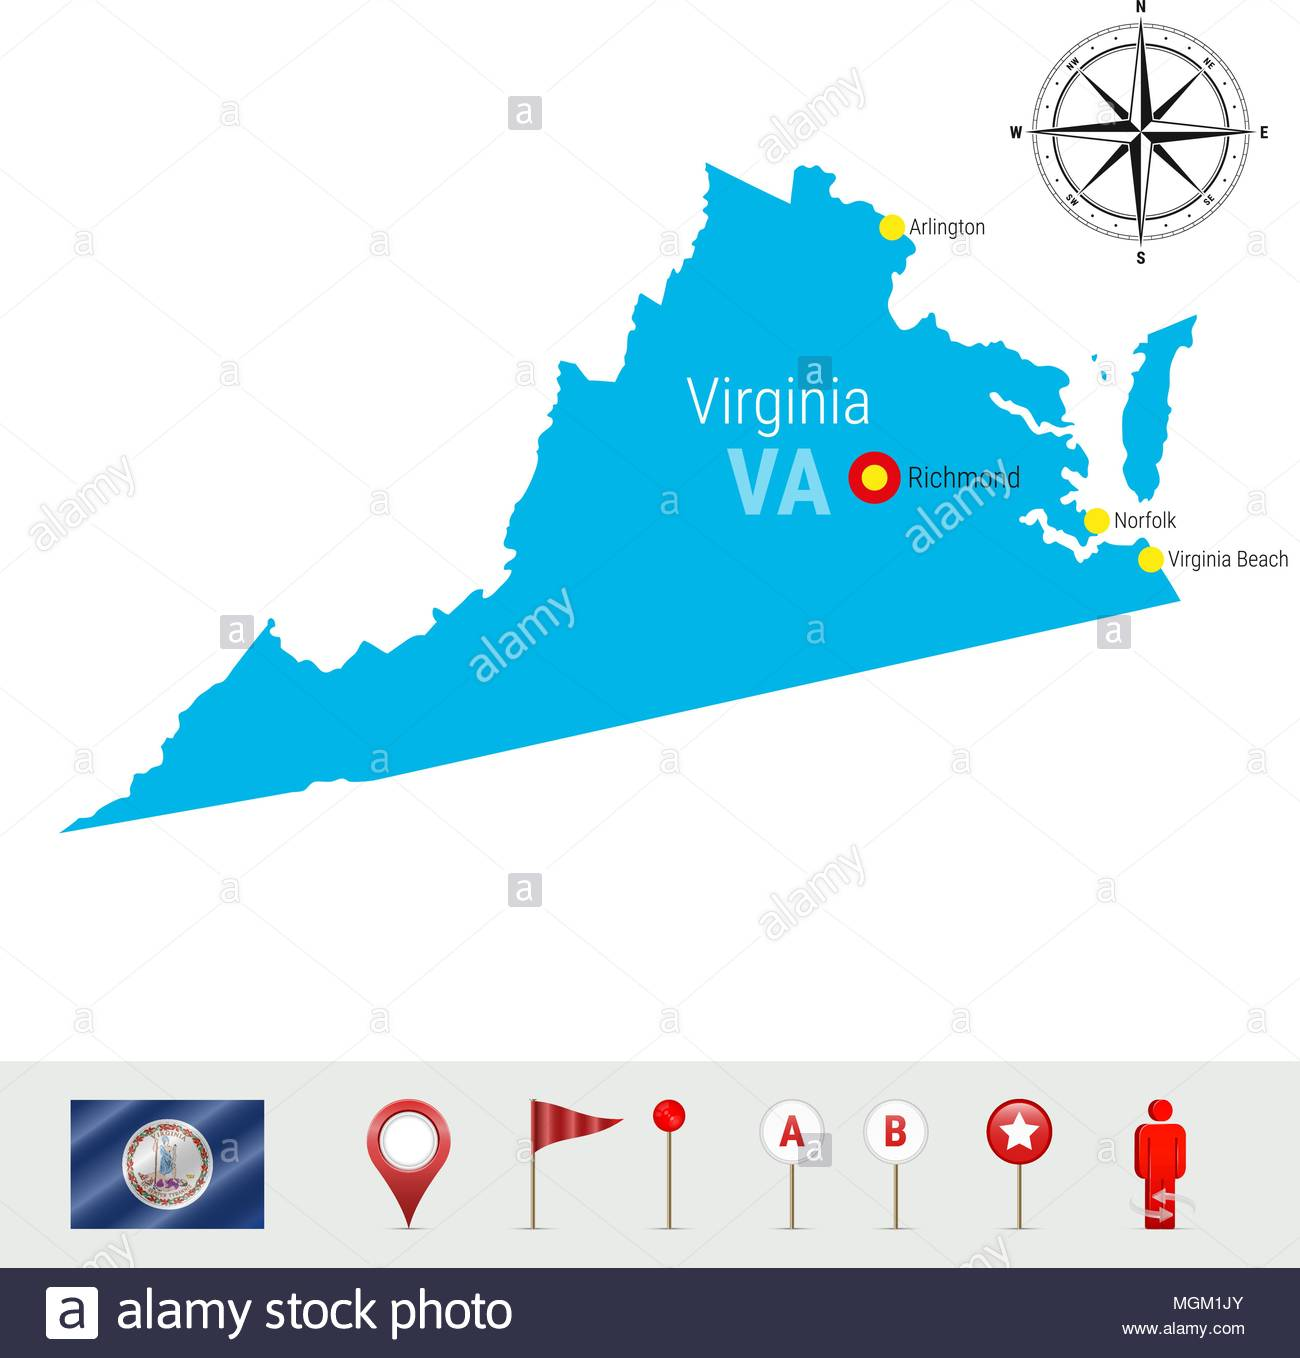 1300x1358 Virginia State Map Stock Photos Amp Virginia State Map Stock Images